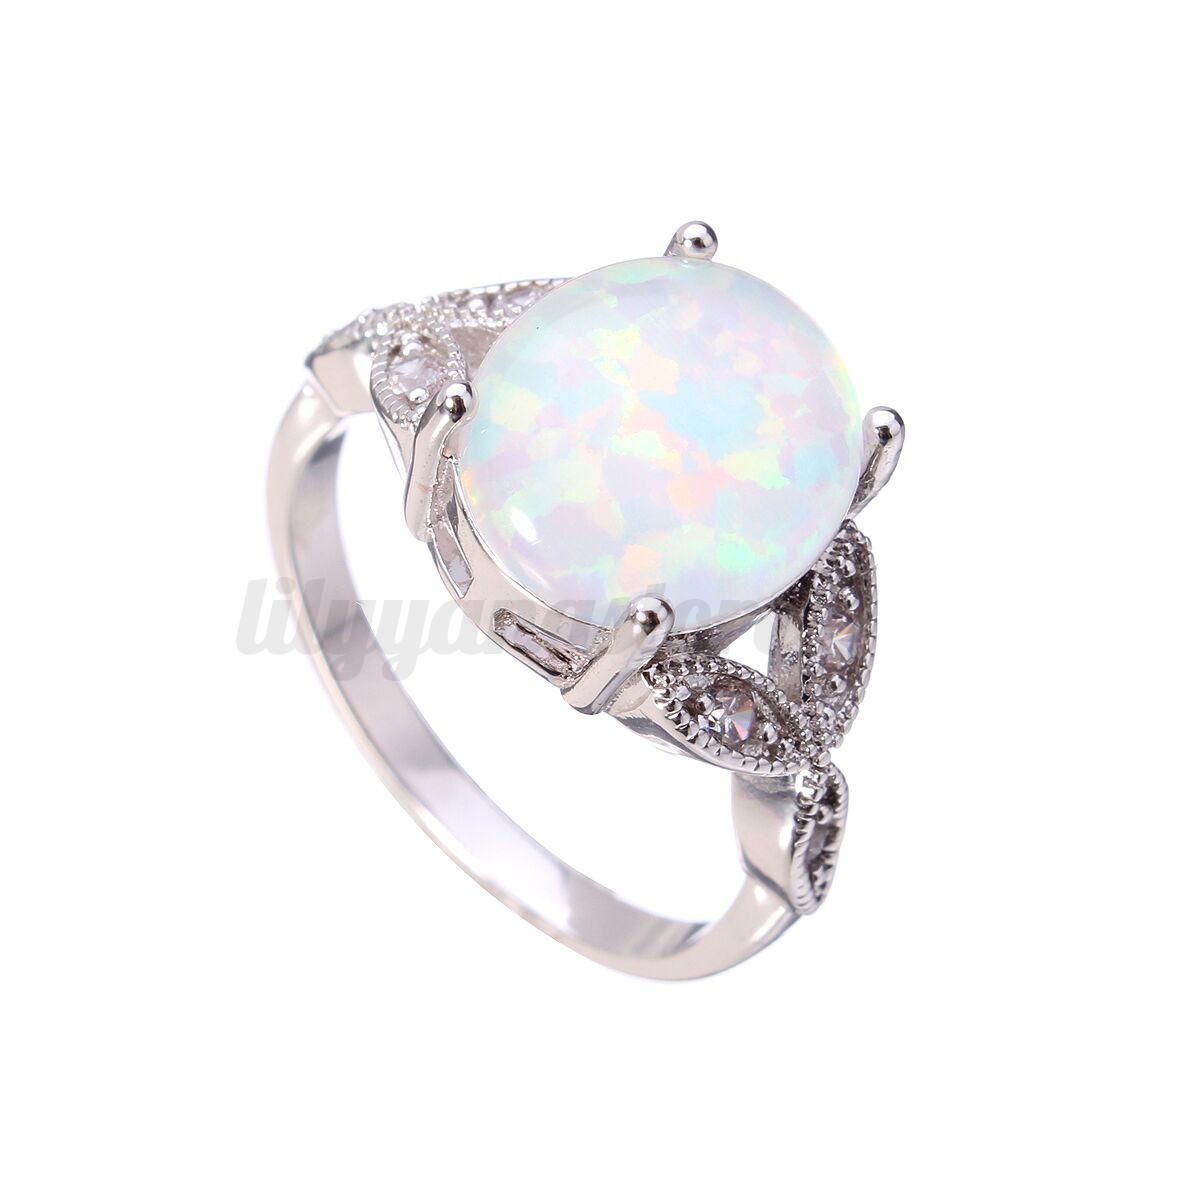 4 colors fire opal sterling silver plated ring wedding. Black Bedroom Furniture Sets. Home Design Ideas